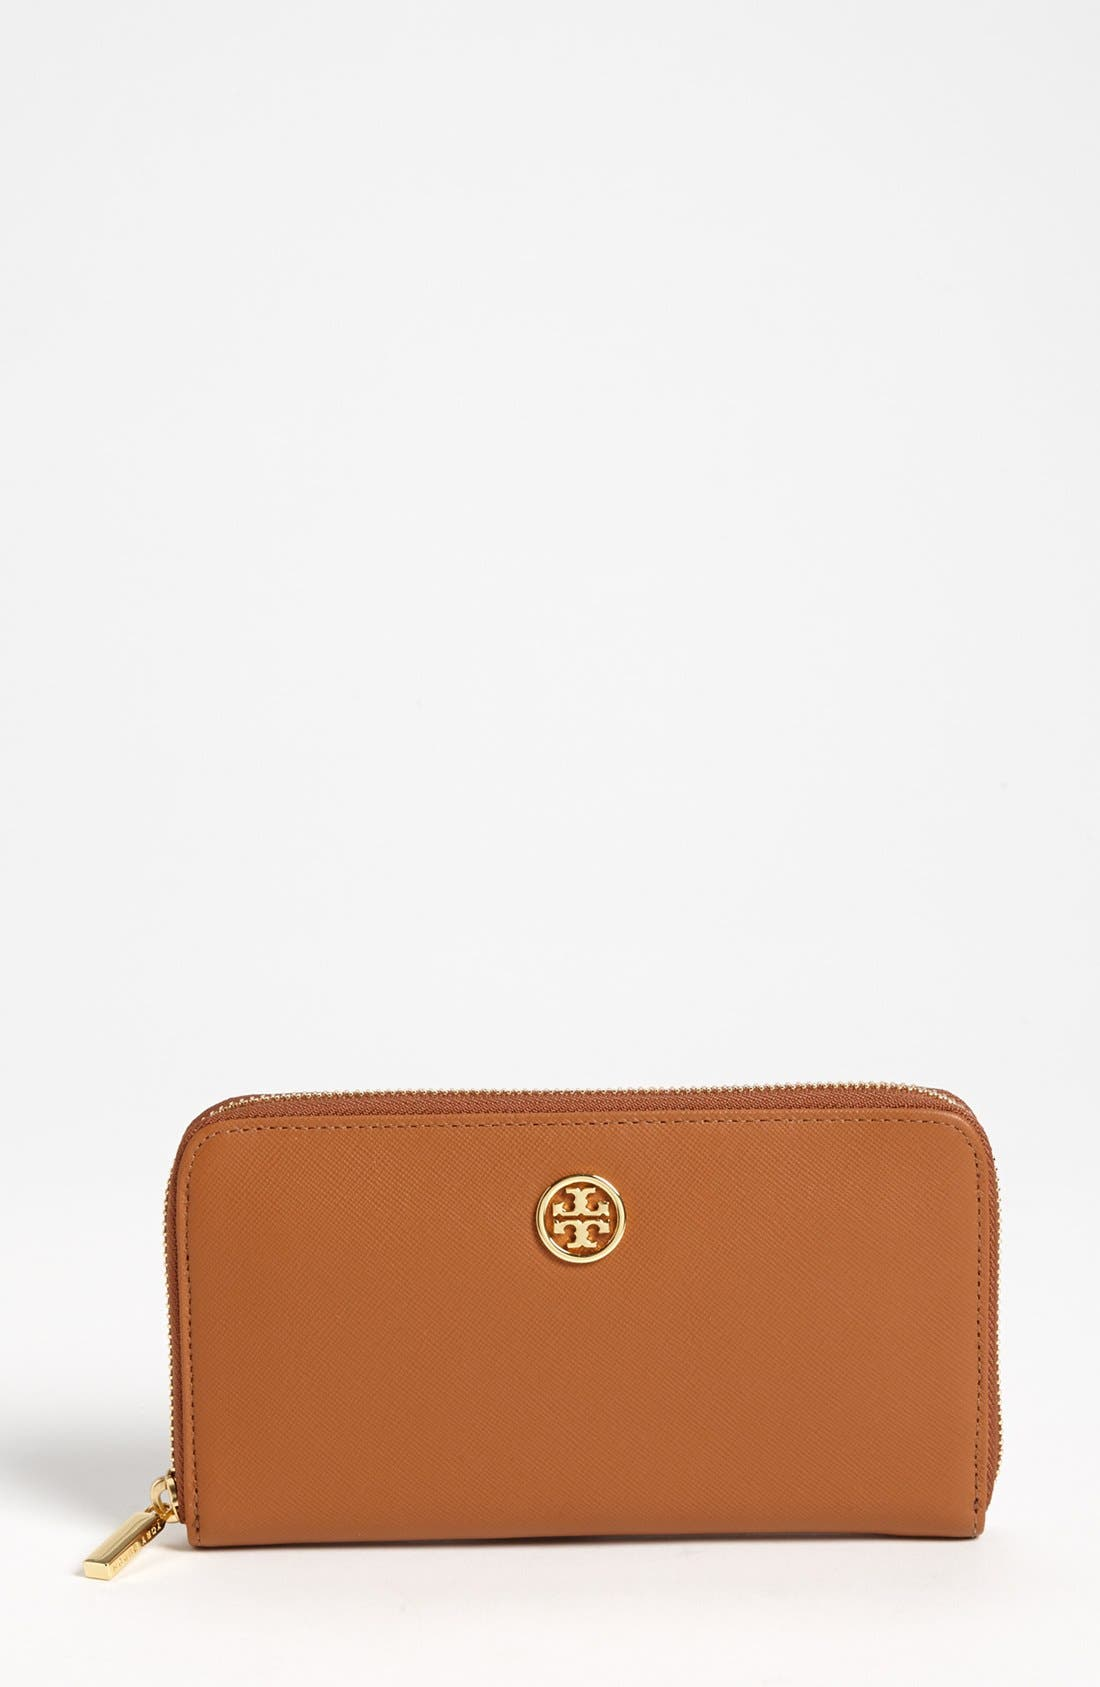 Alternate Image 1 Selected - Tory Burch 'Robinson' Zip Continental Wallet